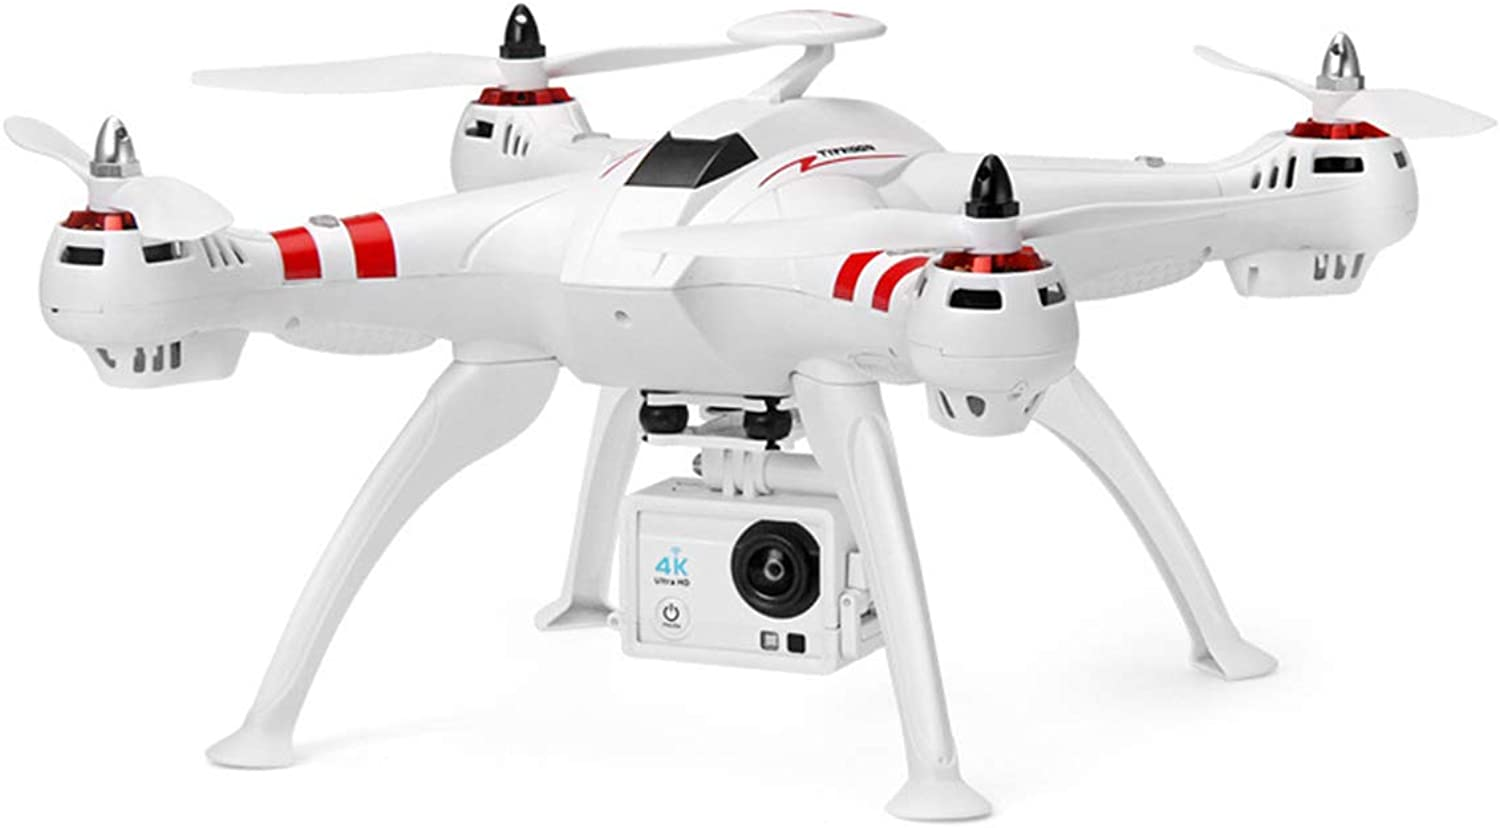 GPS drone 4K ultra long continuous aerial camera, HD professional aircraft, 1 km intelligent fouraxis remote control aircraft, height maintenance, smart battery,40 million pixelsThree batteries